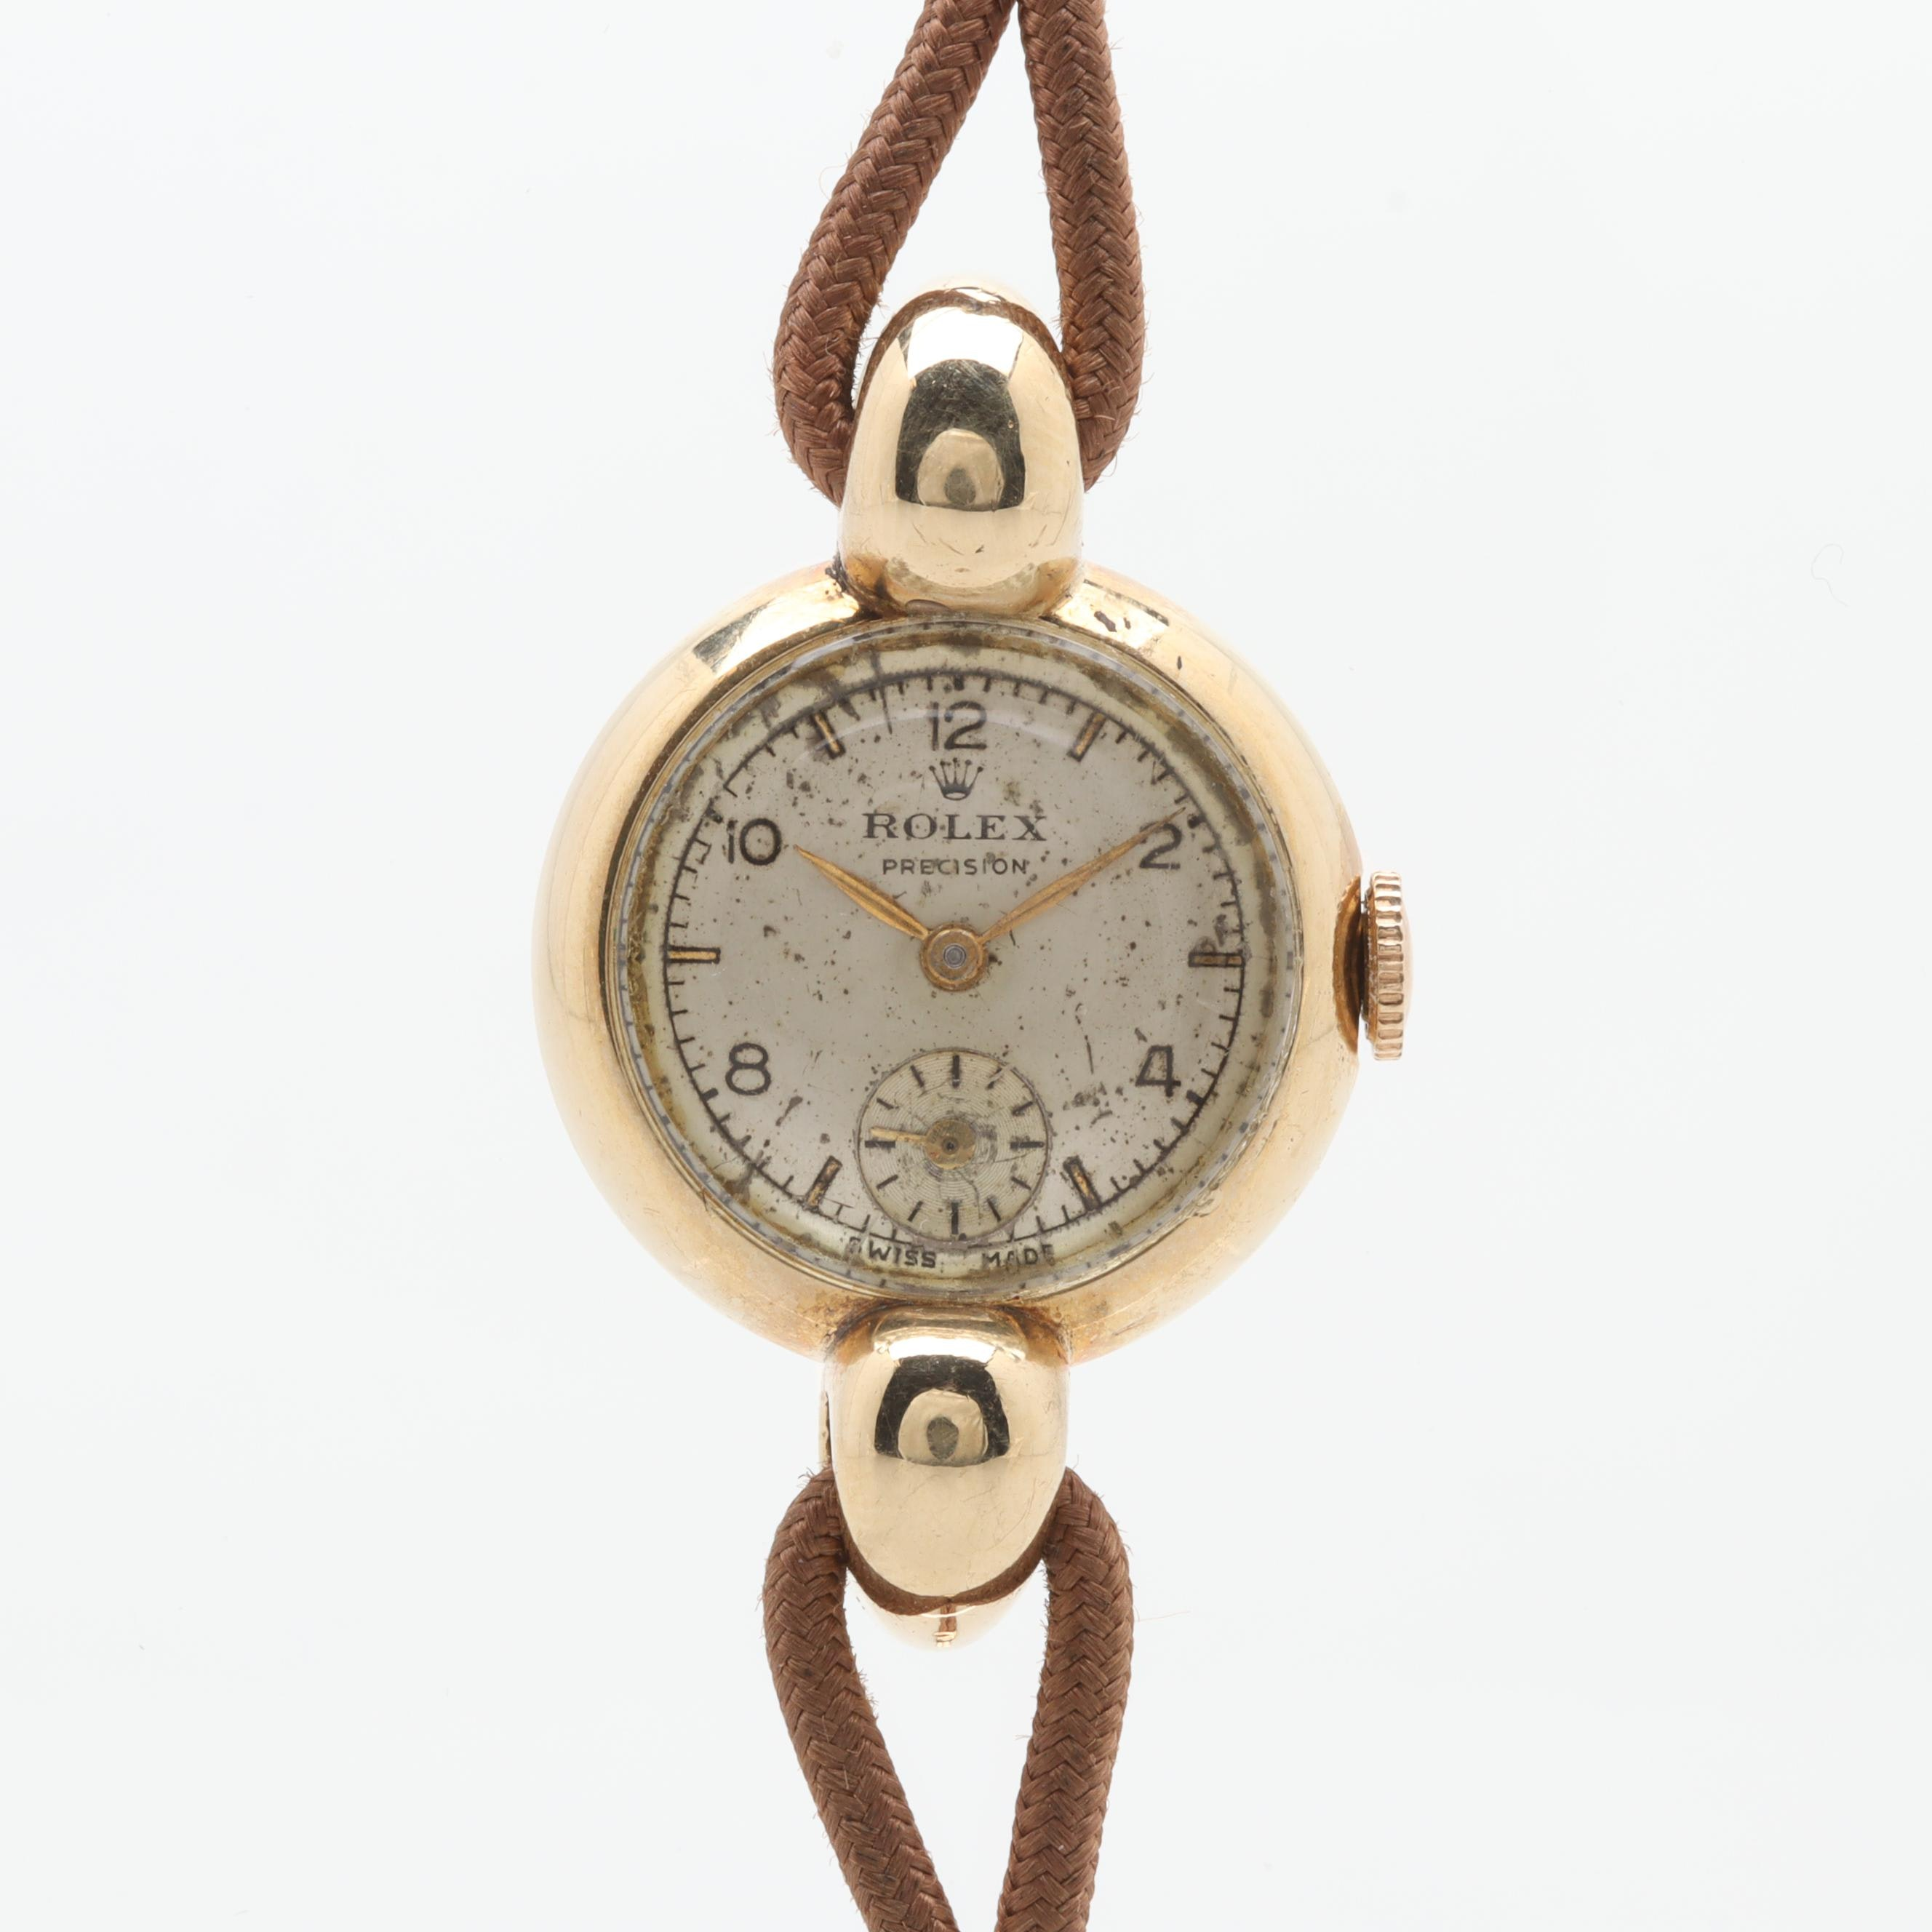 Circa 1920s Rolex 9K Yellow Gold Wristwatch